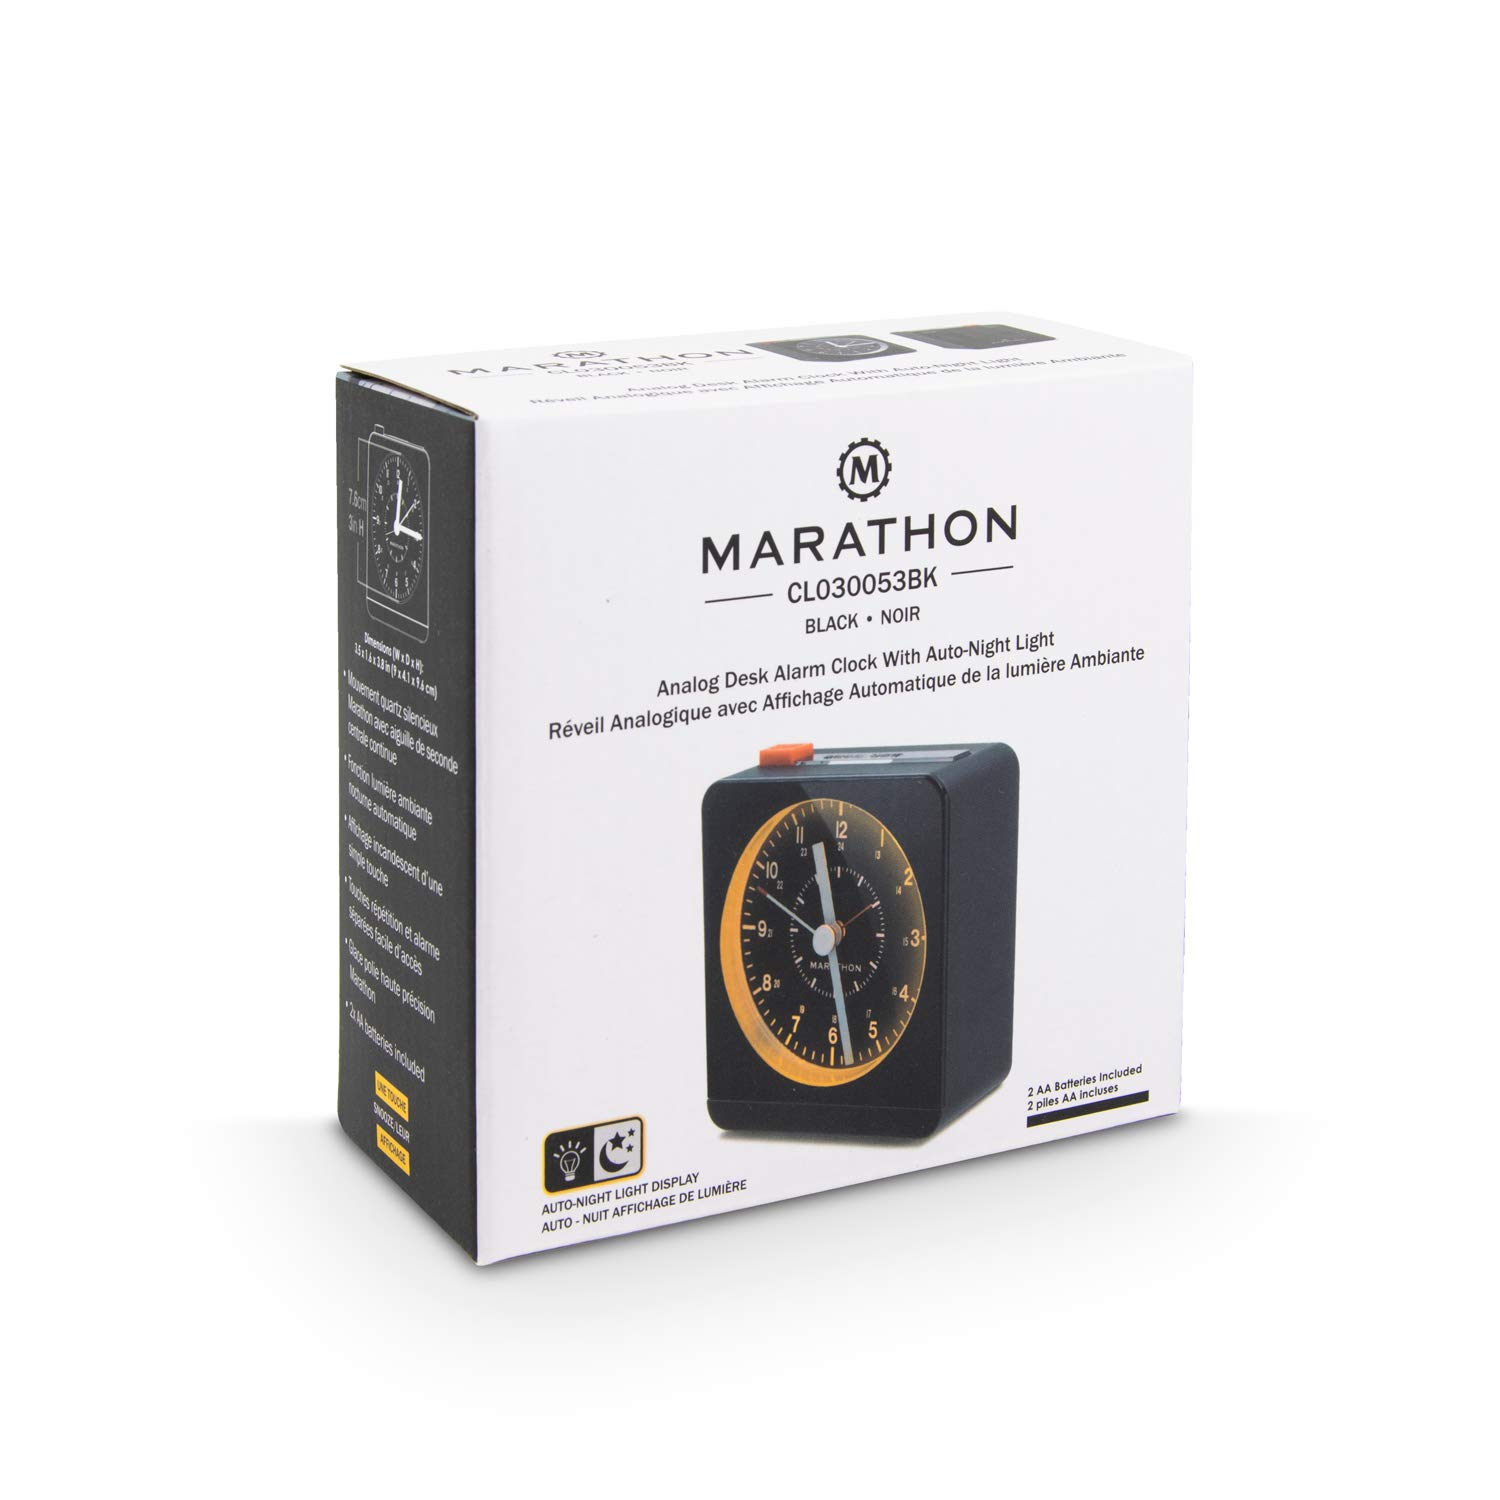 Marathon CL030053BK Classic Silent Sweep Alarm Clock with Auto Night Light Batteries Included